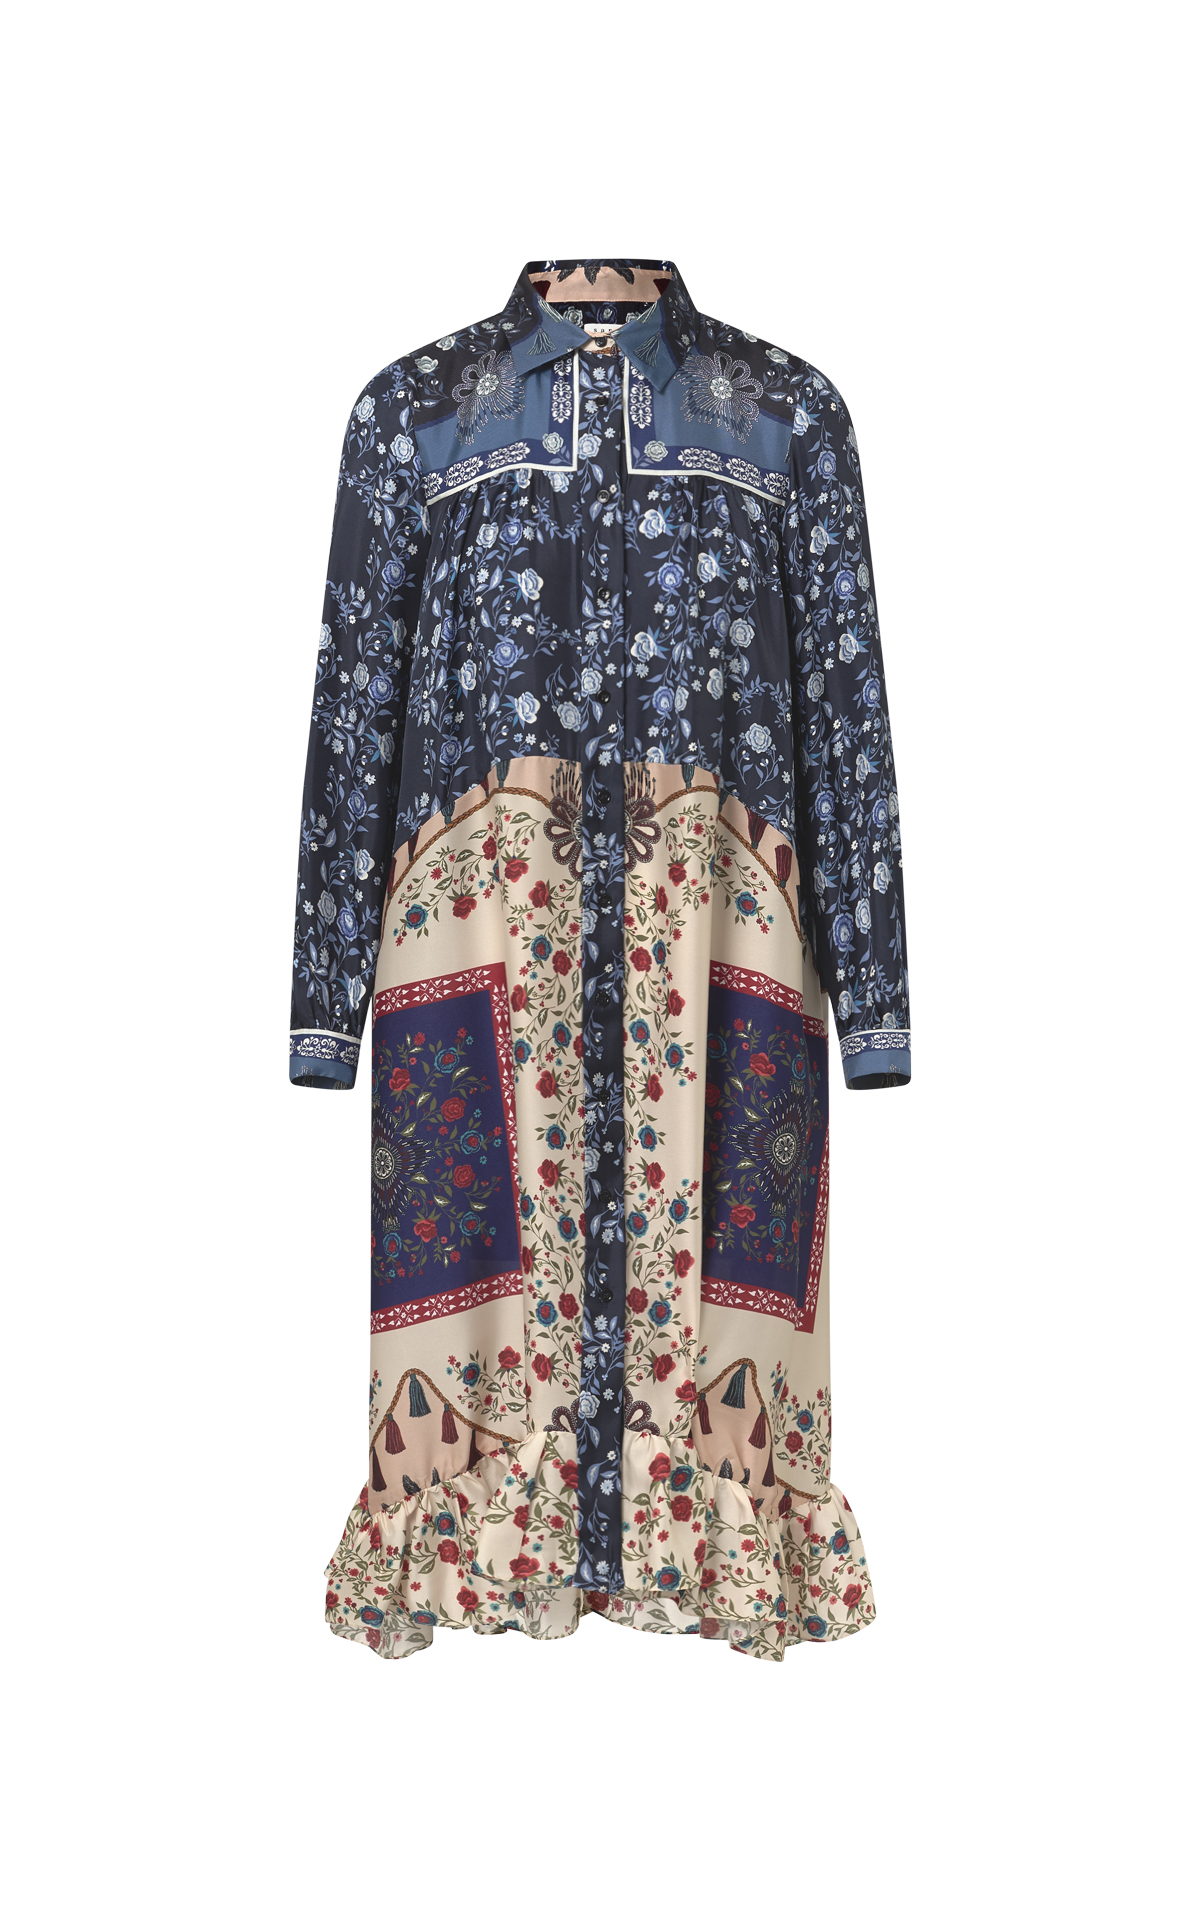 Flowered print blue and beige midi silk dress for woman Sandro